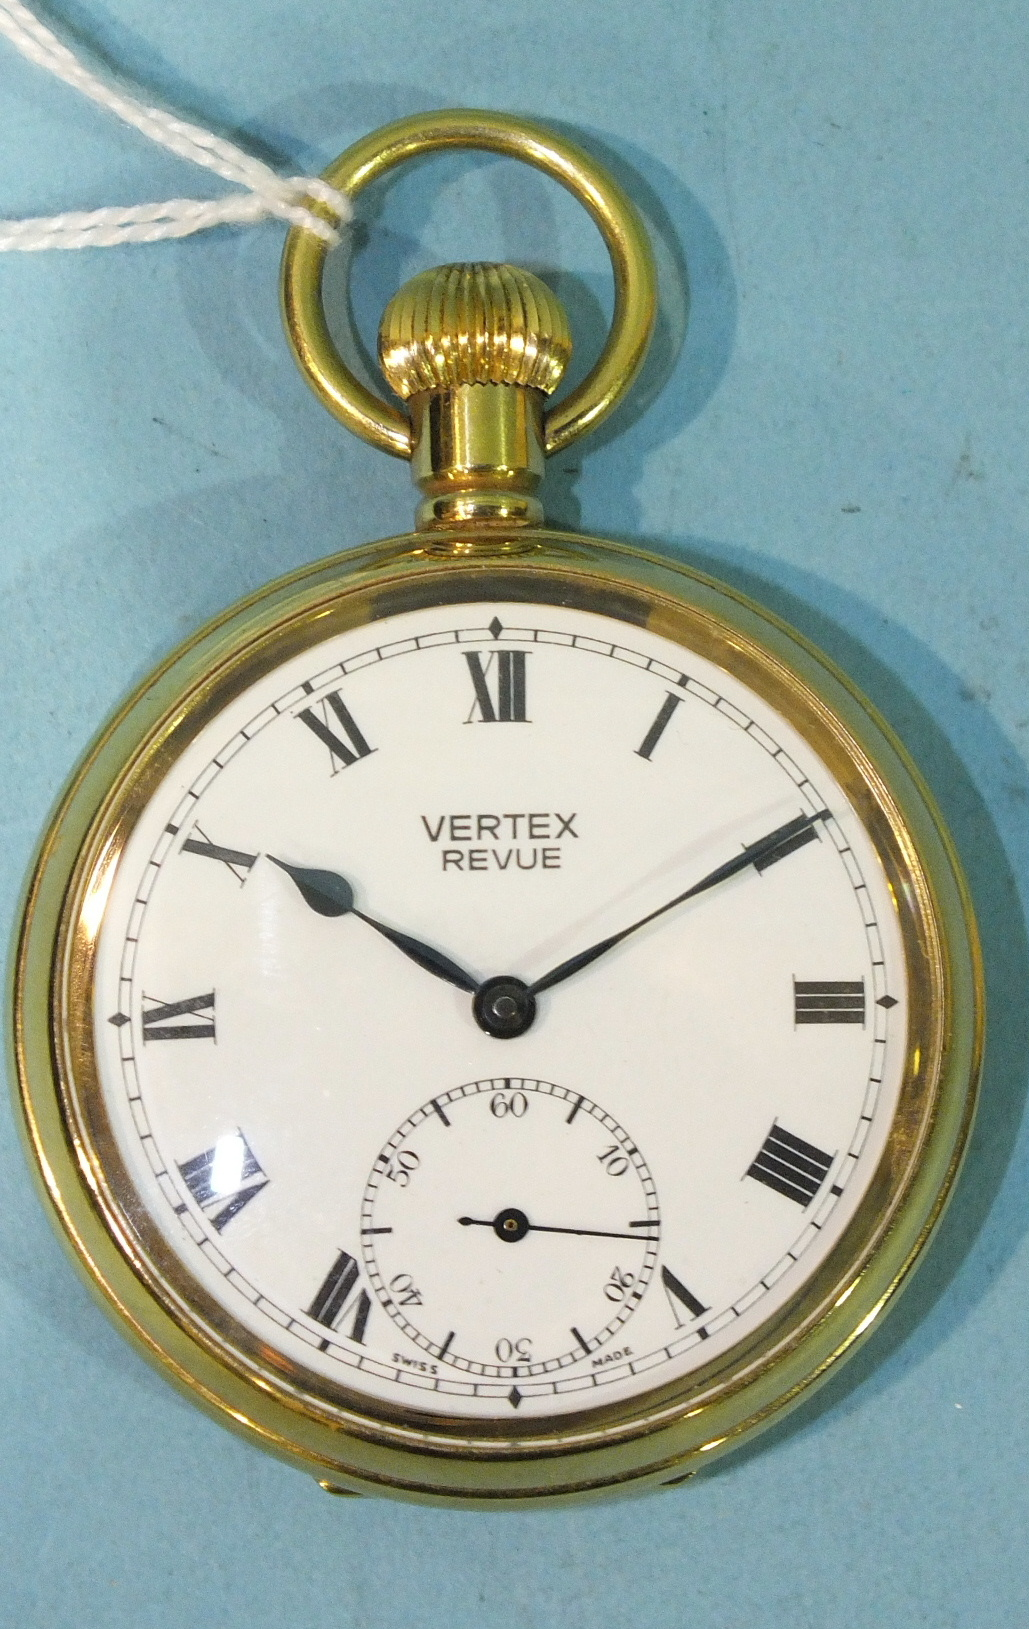 Lot 308 - A Vertex Revue open face keyless pocket watch with gold plated case.